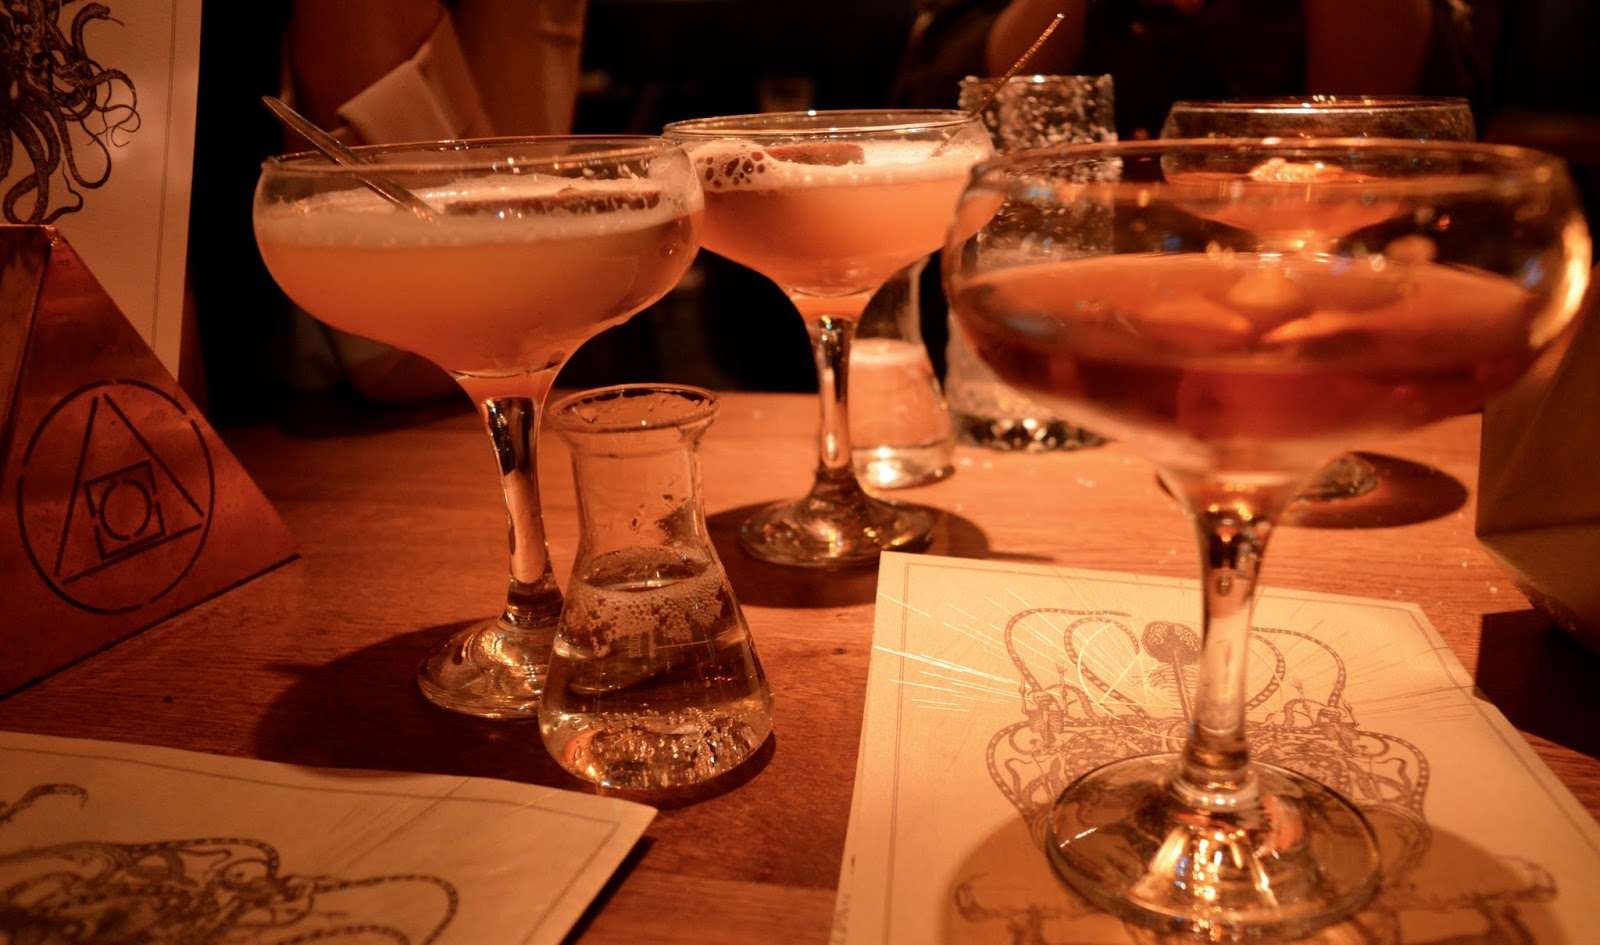 The Alchemist | Newcastle Upon Tyne - pornstar martini cocktail